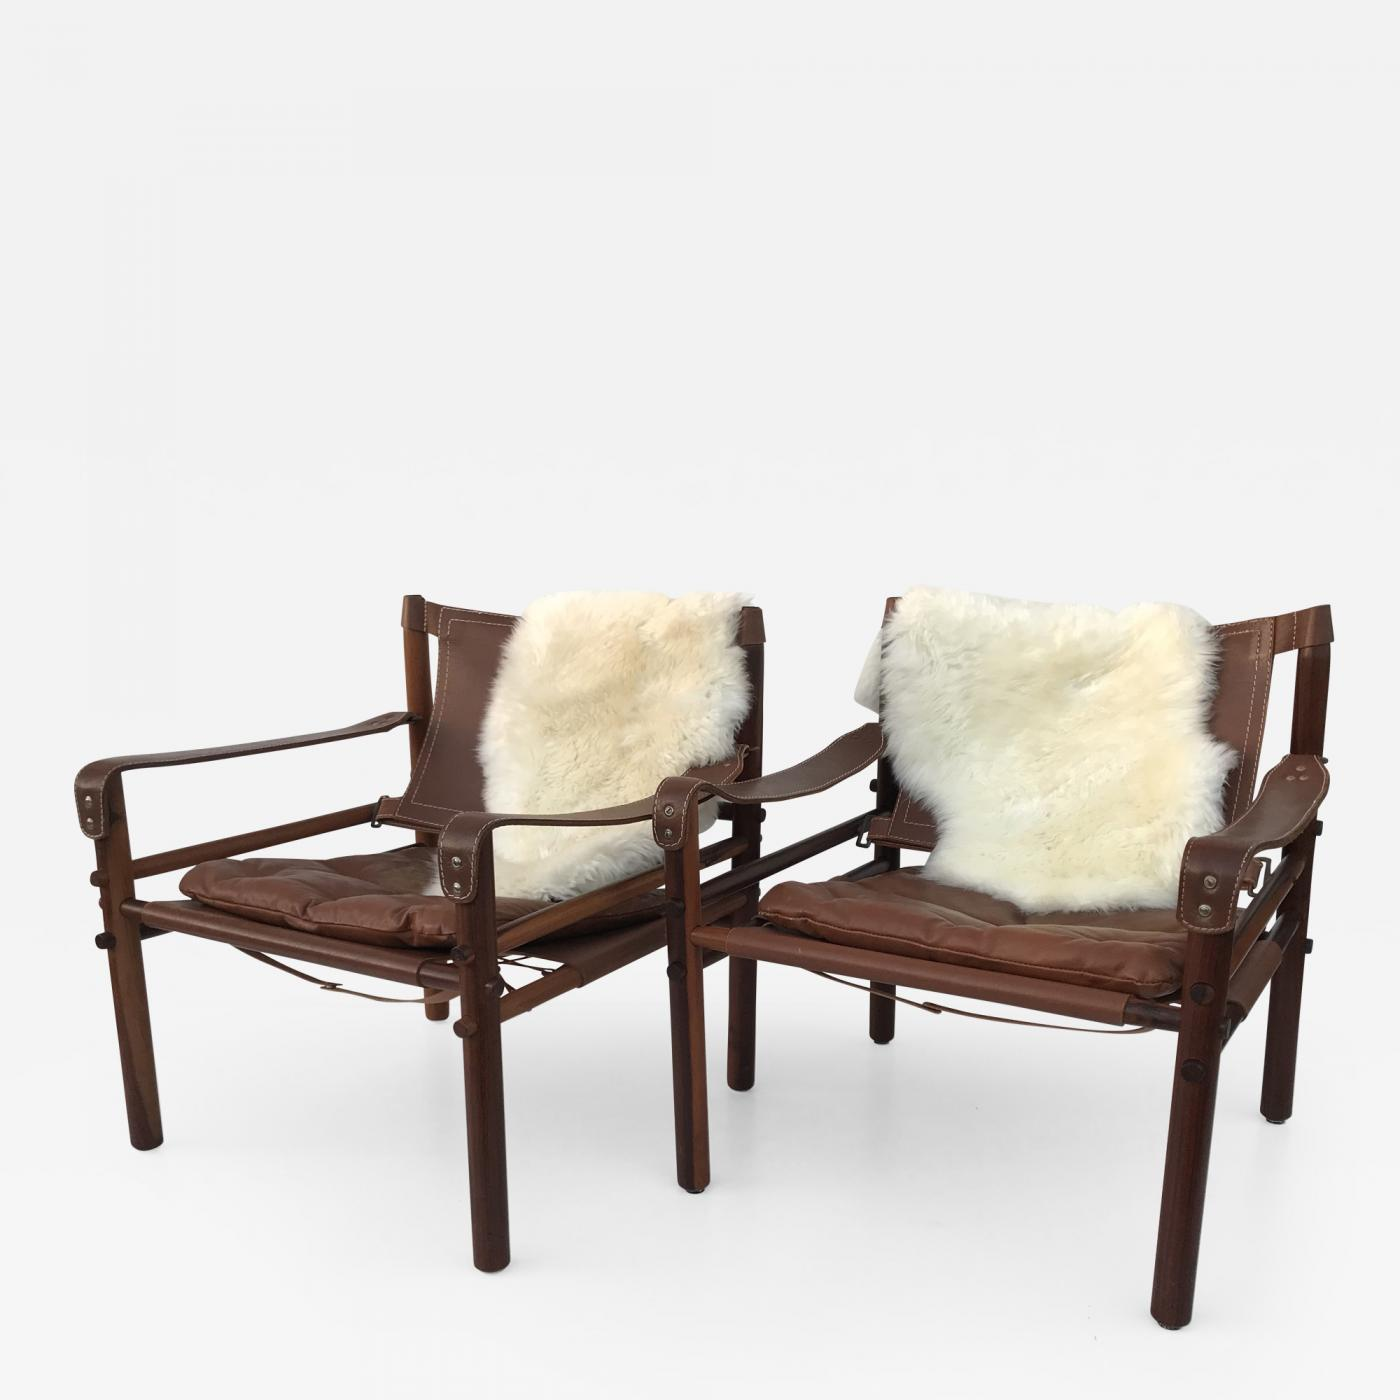 Safari Chairs Arne Norell Pair Of Rosewood Sirocco Safari Chairs By Arne Norell